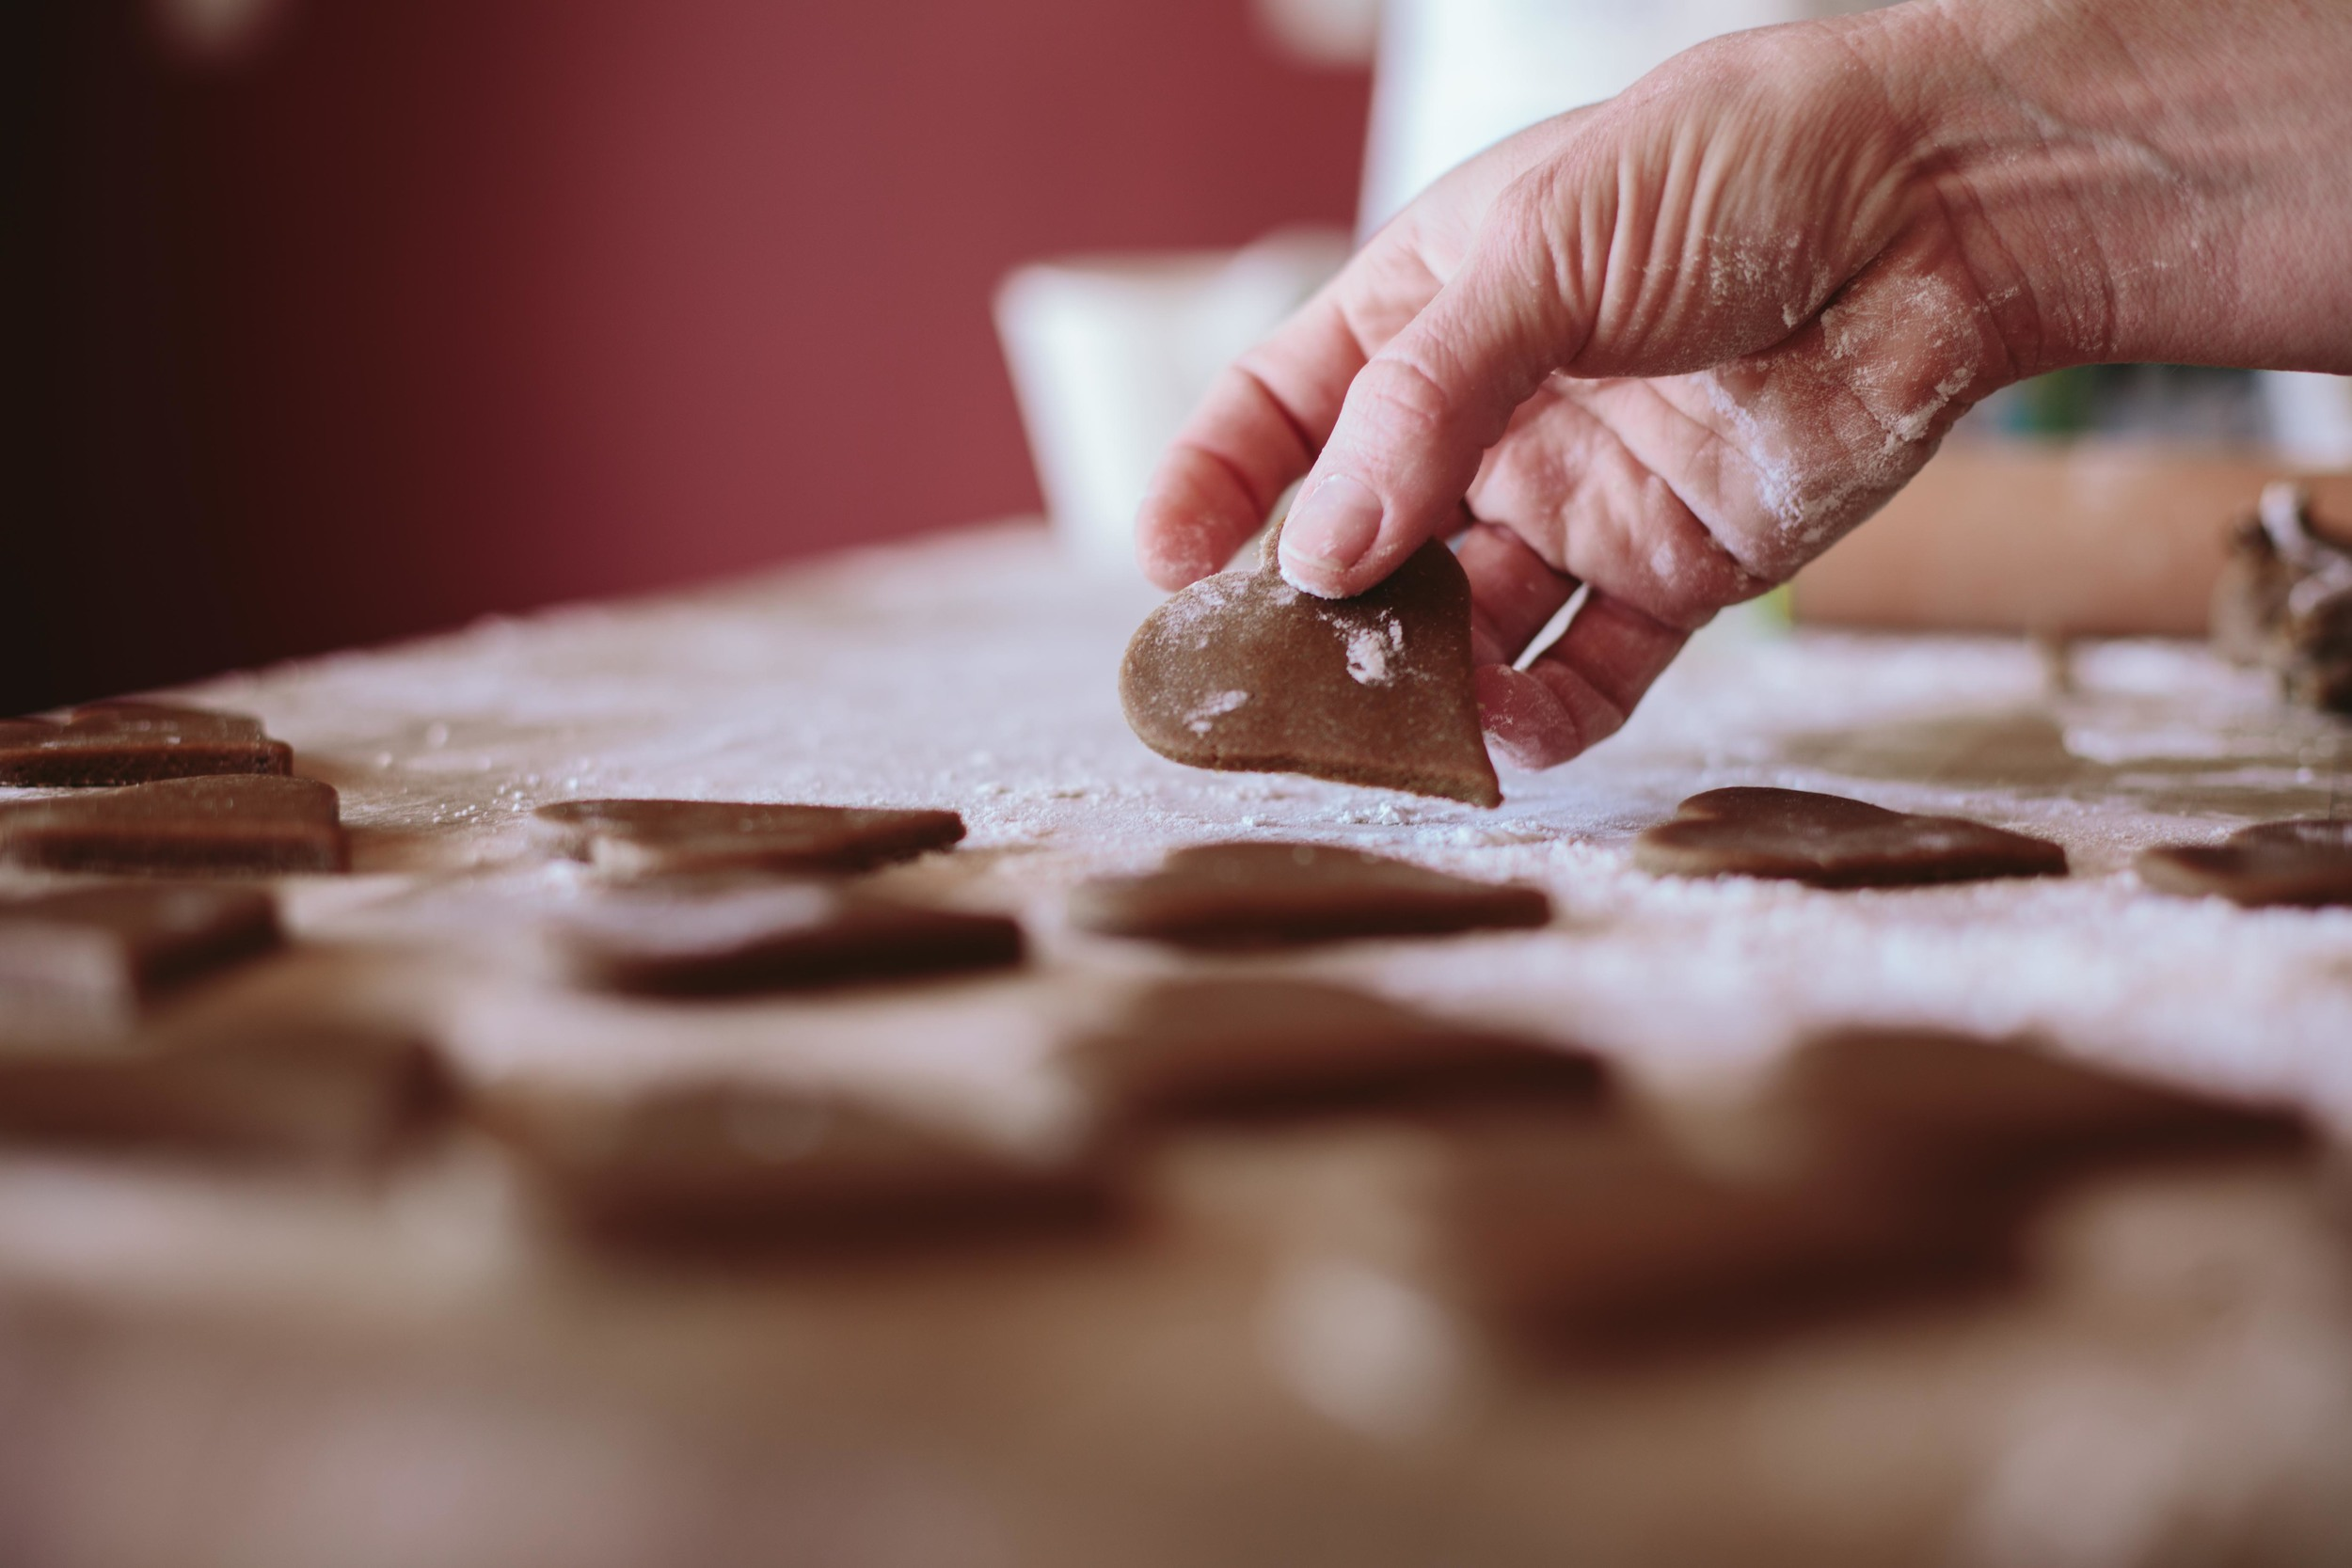 A Table Top Christmas// Lebkuchen - German Gingerbread Cookies // The Eternal Child